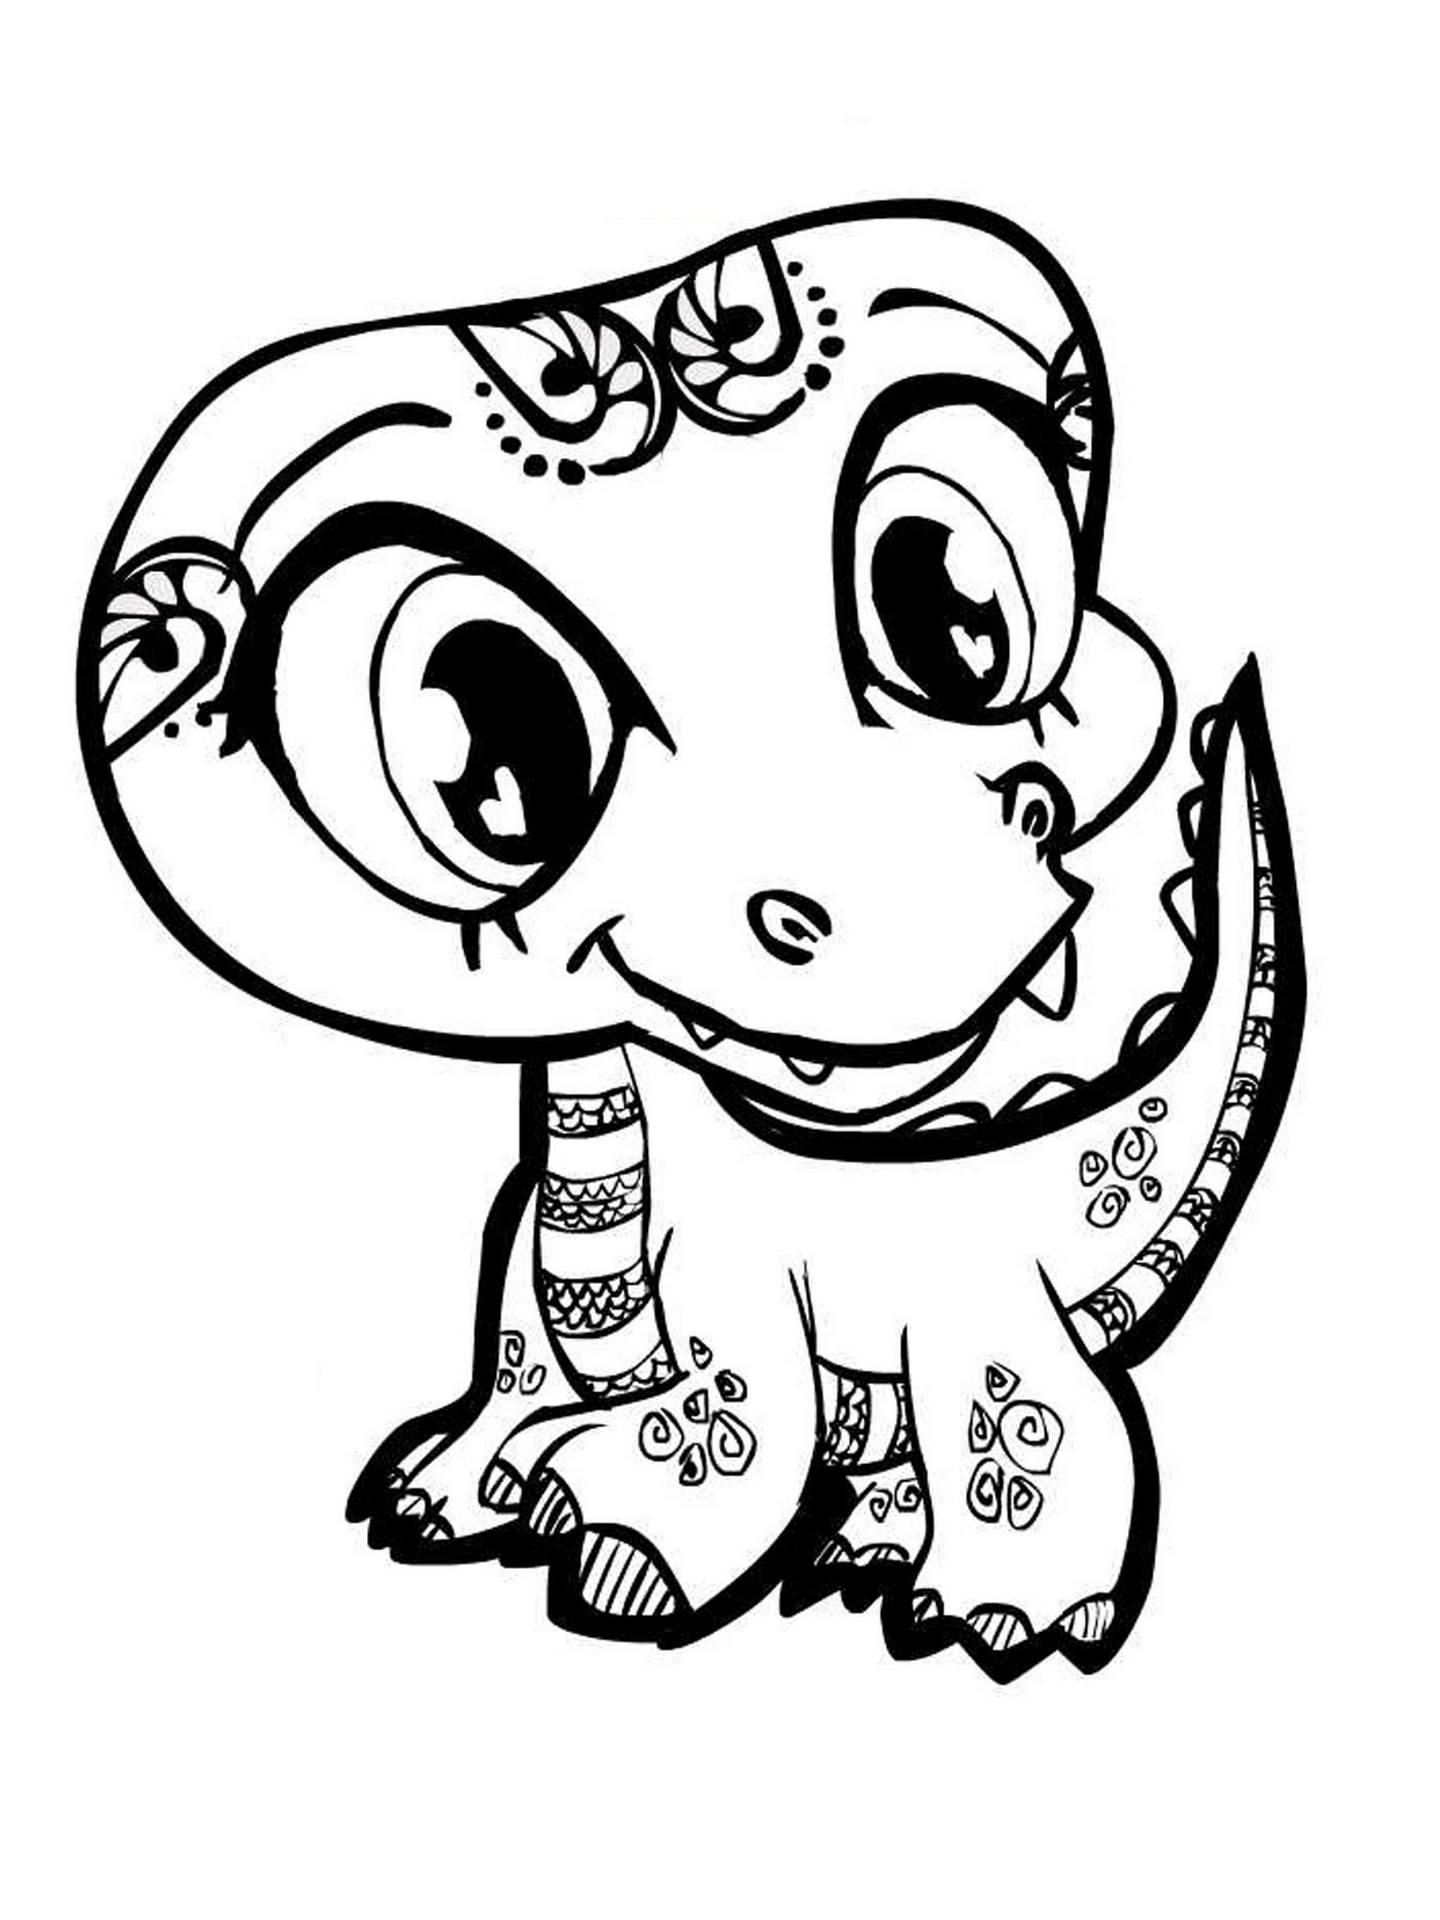 1440x1920 Coloring Pages For 10 Year Old Girls Free And Up